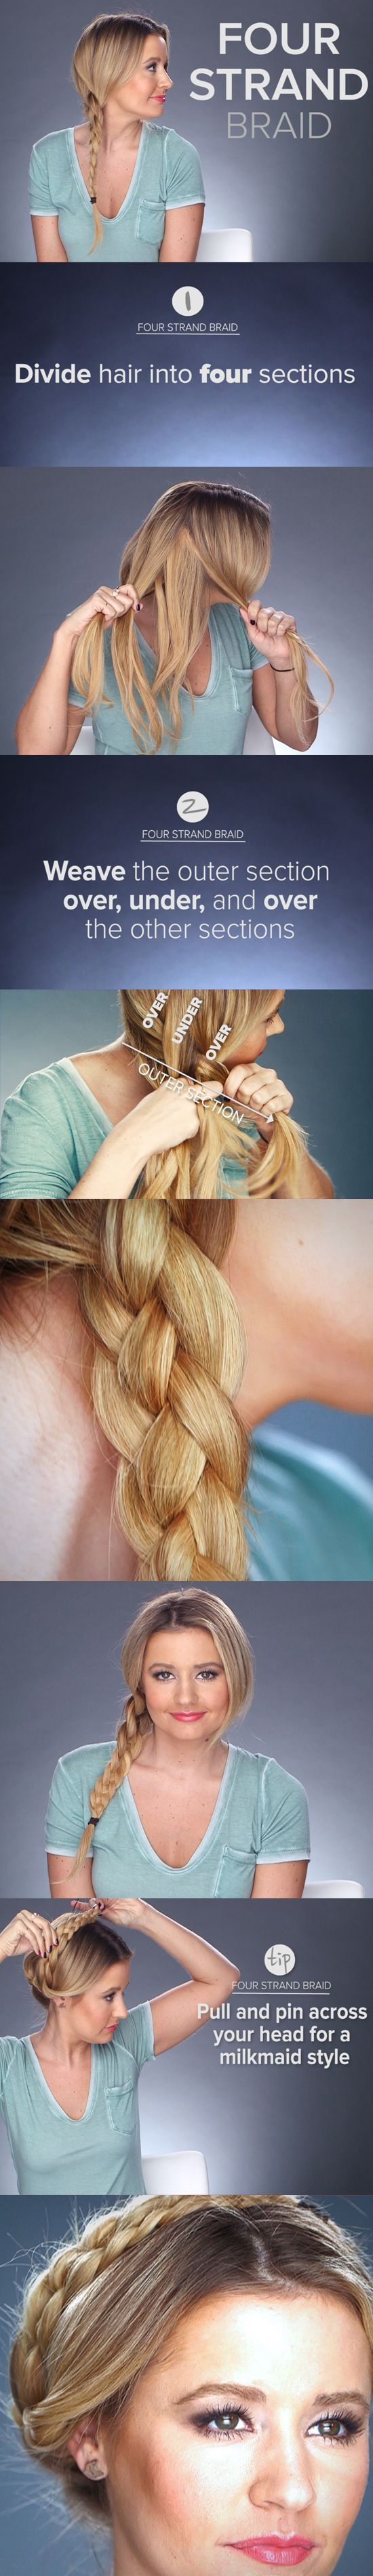 Upgrade your braid game: the four-strand braid  Finish it off with an #americanjewel hair tie :)